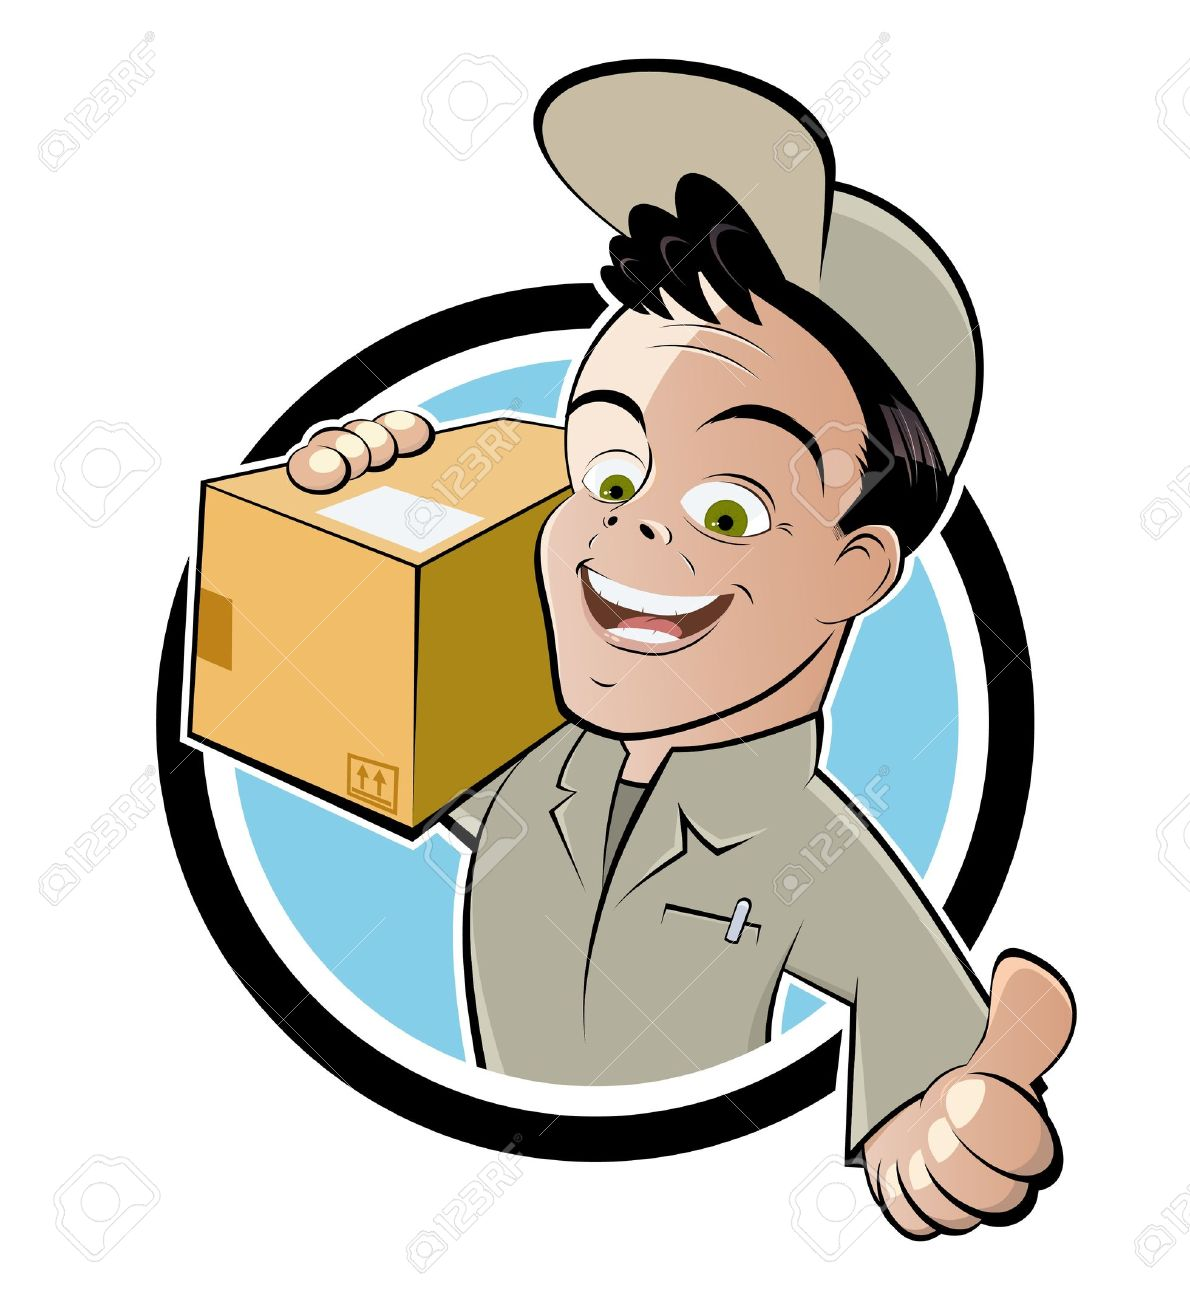 Ups Delivery Man Clipart